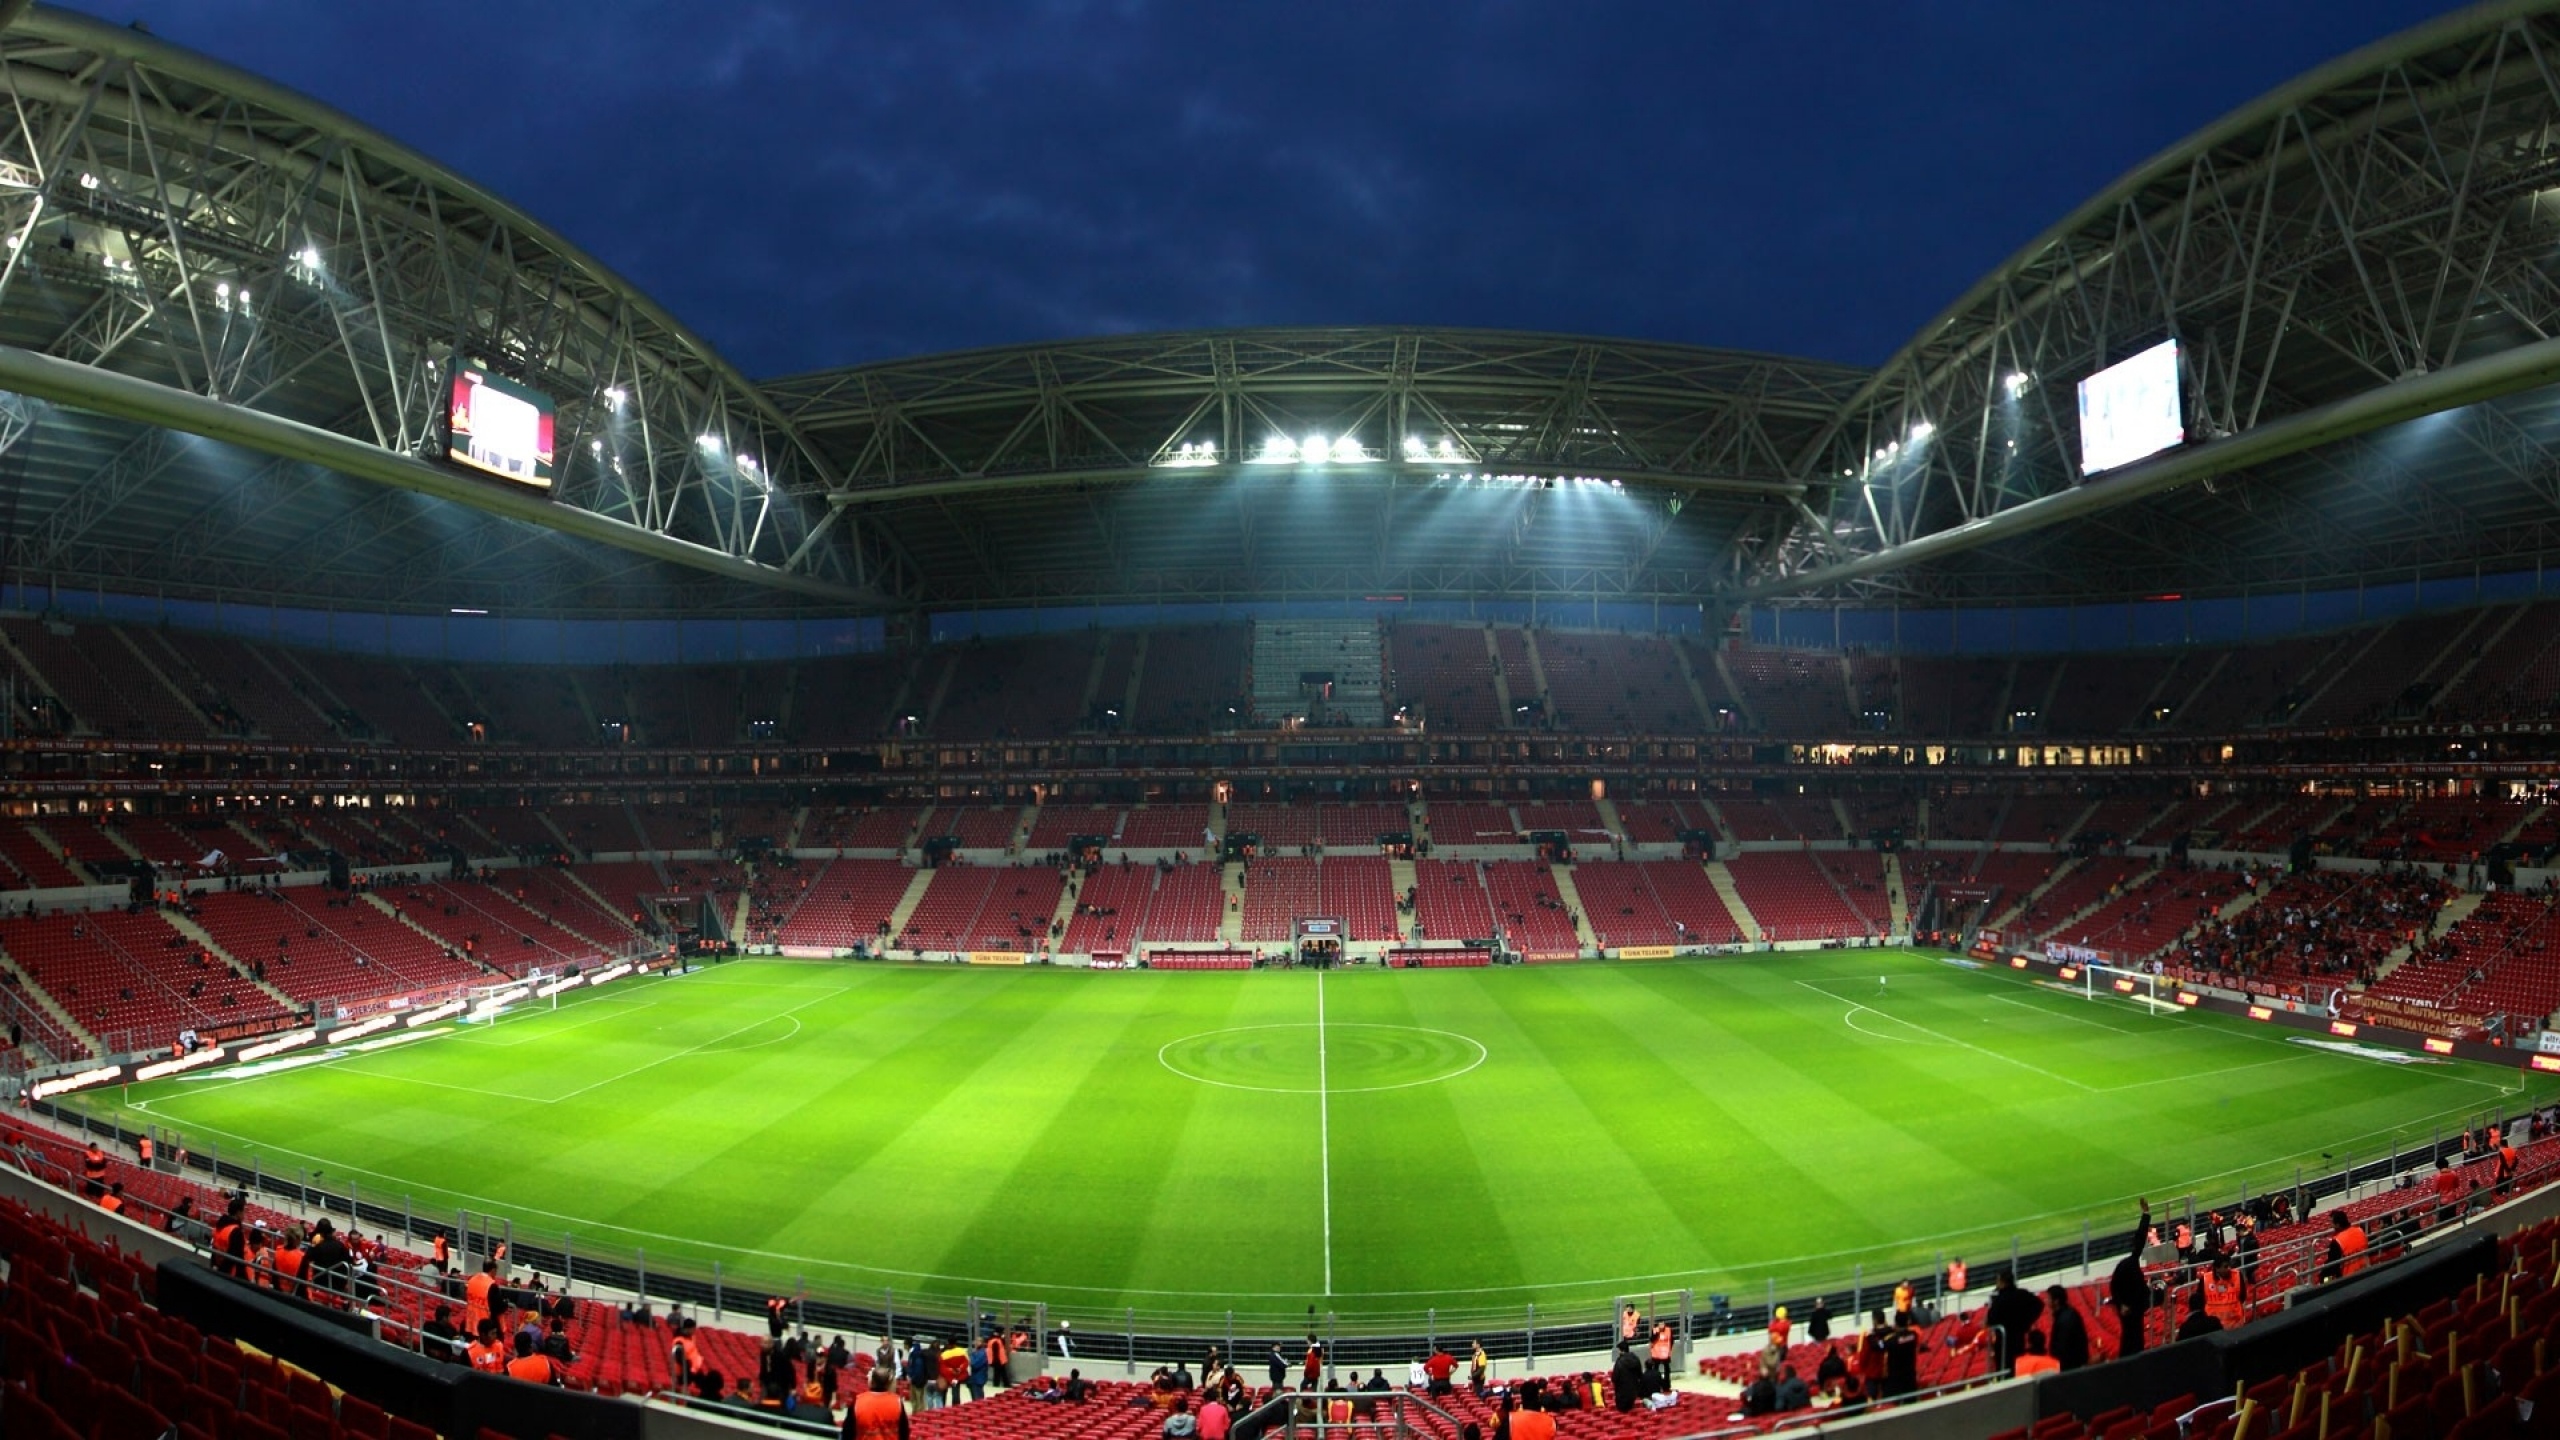 soccer stadium galatasaray sk tt arena galatasaray Wallpaper download 2560x1440